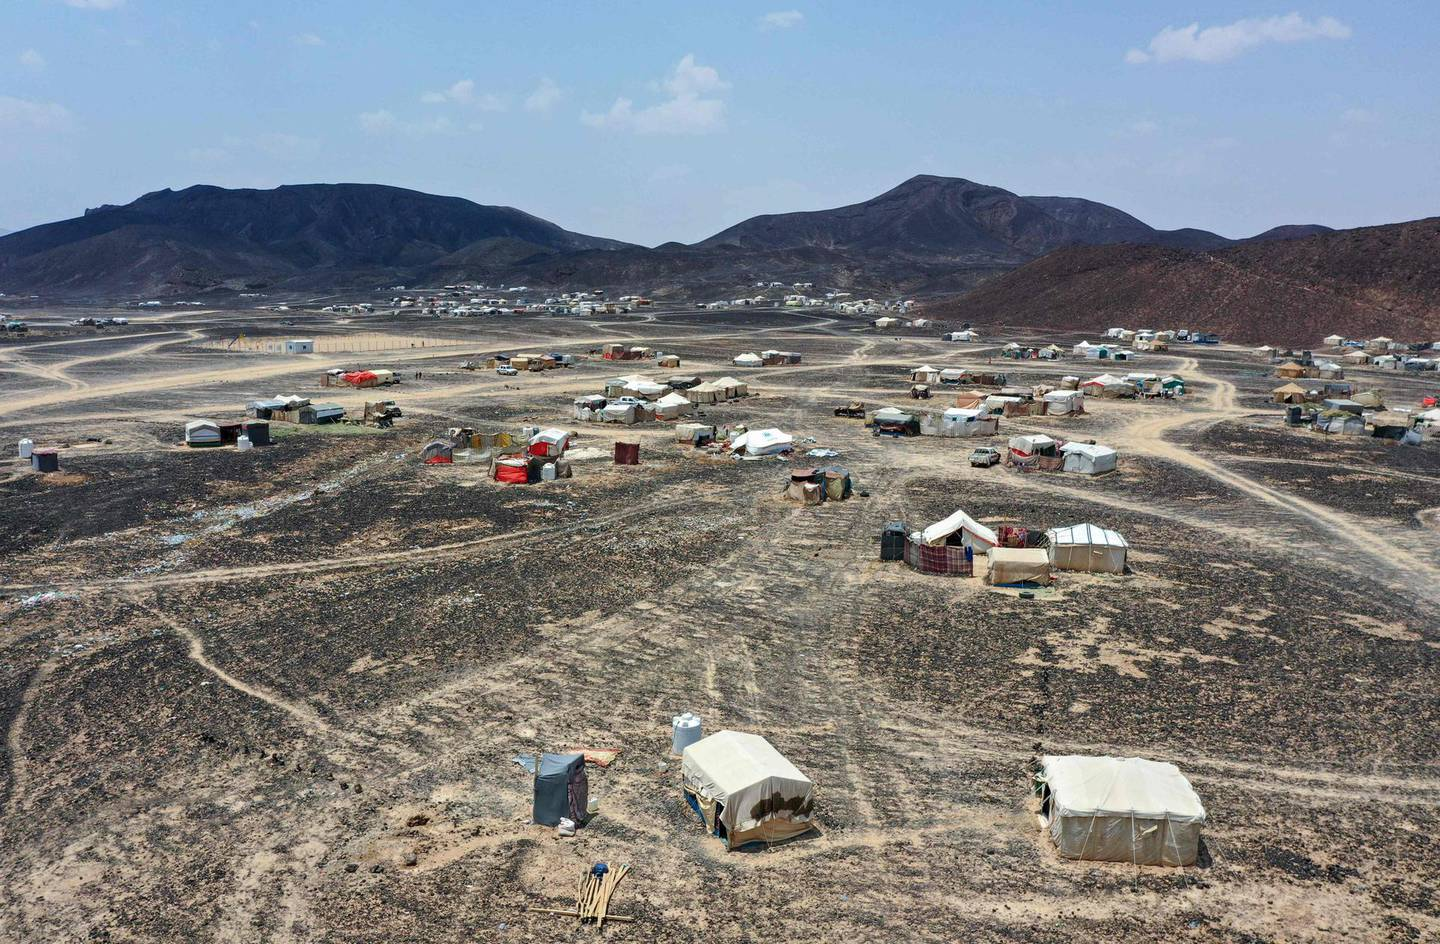 A general view shows the Suweida makeshift camp for internally displaced people in Yemen's Marib province on September 16, 2020. The Iran-backed fighters have long held the capital Sanaa which lies just 120 kilometres (75 miles) away and are mounting a fierce campaign to take the oil-rich province. If they are successful, it would spell disaster for the government and also for the hundreds of thousands of displaced people sheltering in desolate camps who would have to run for their lives once again. / AFP / -